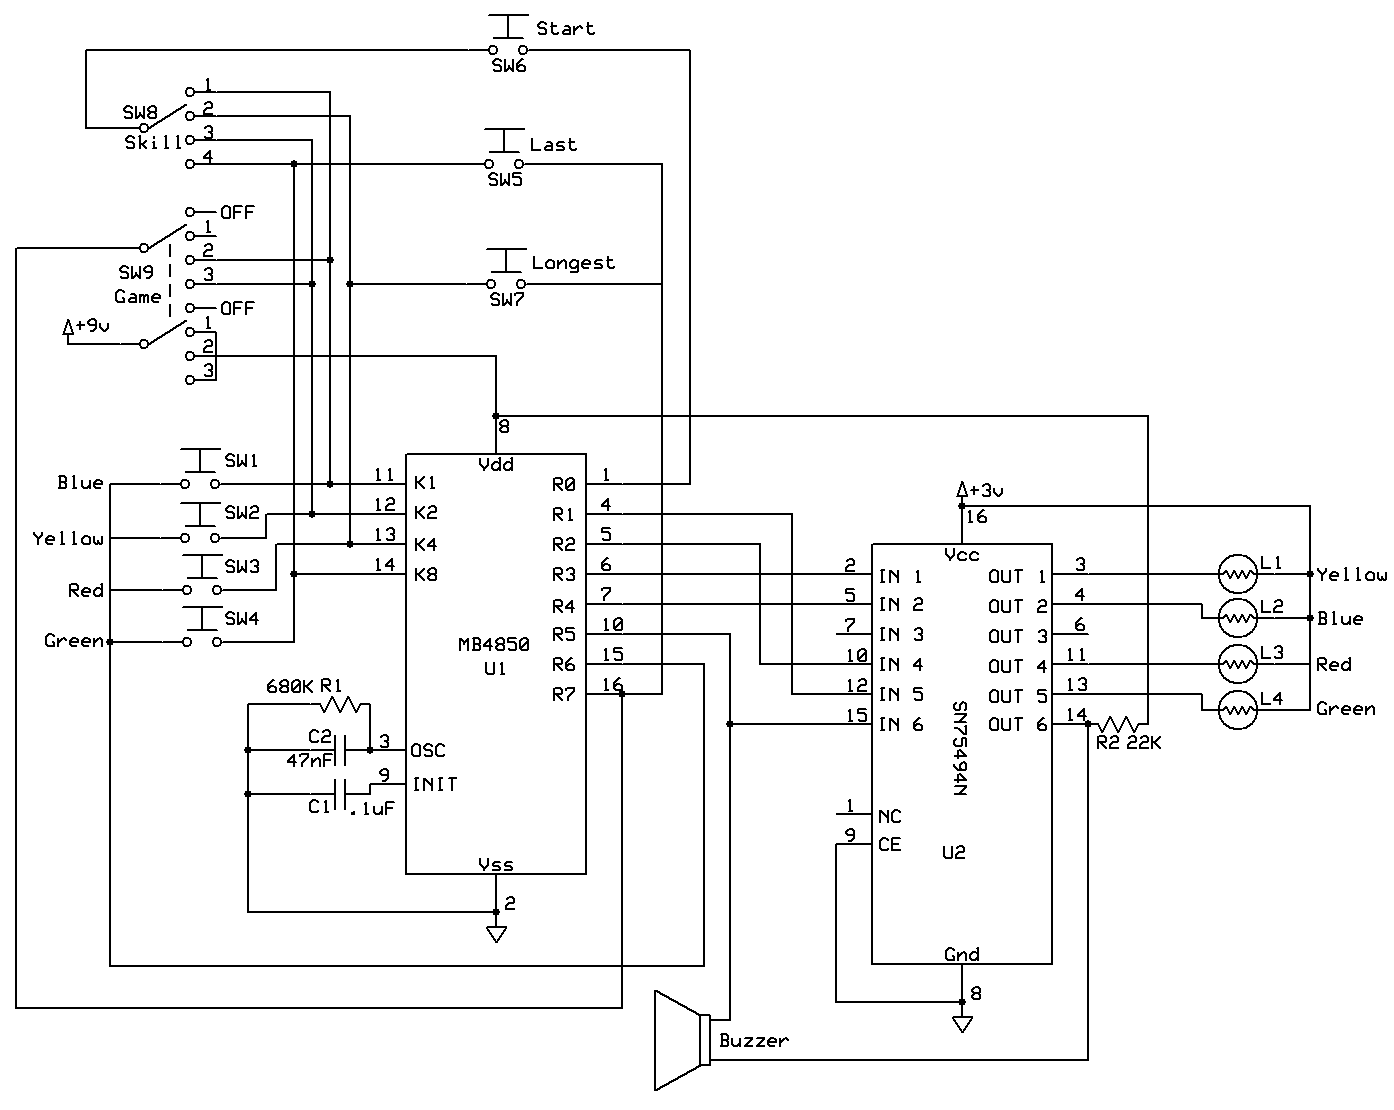 reverse engineering an mb electronic simon game  u2013 waiting for friday